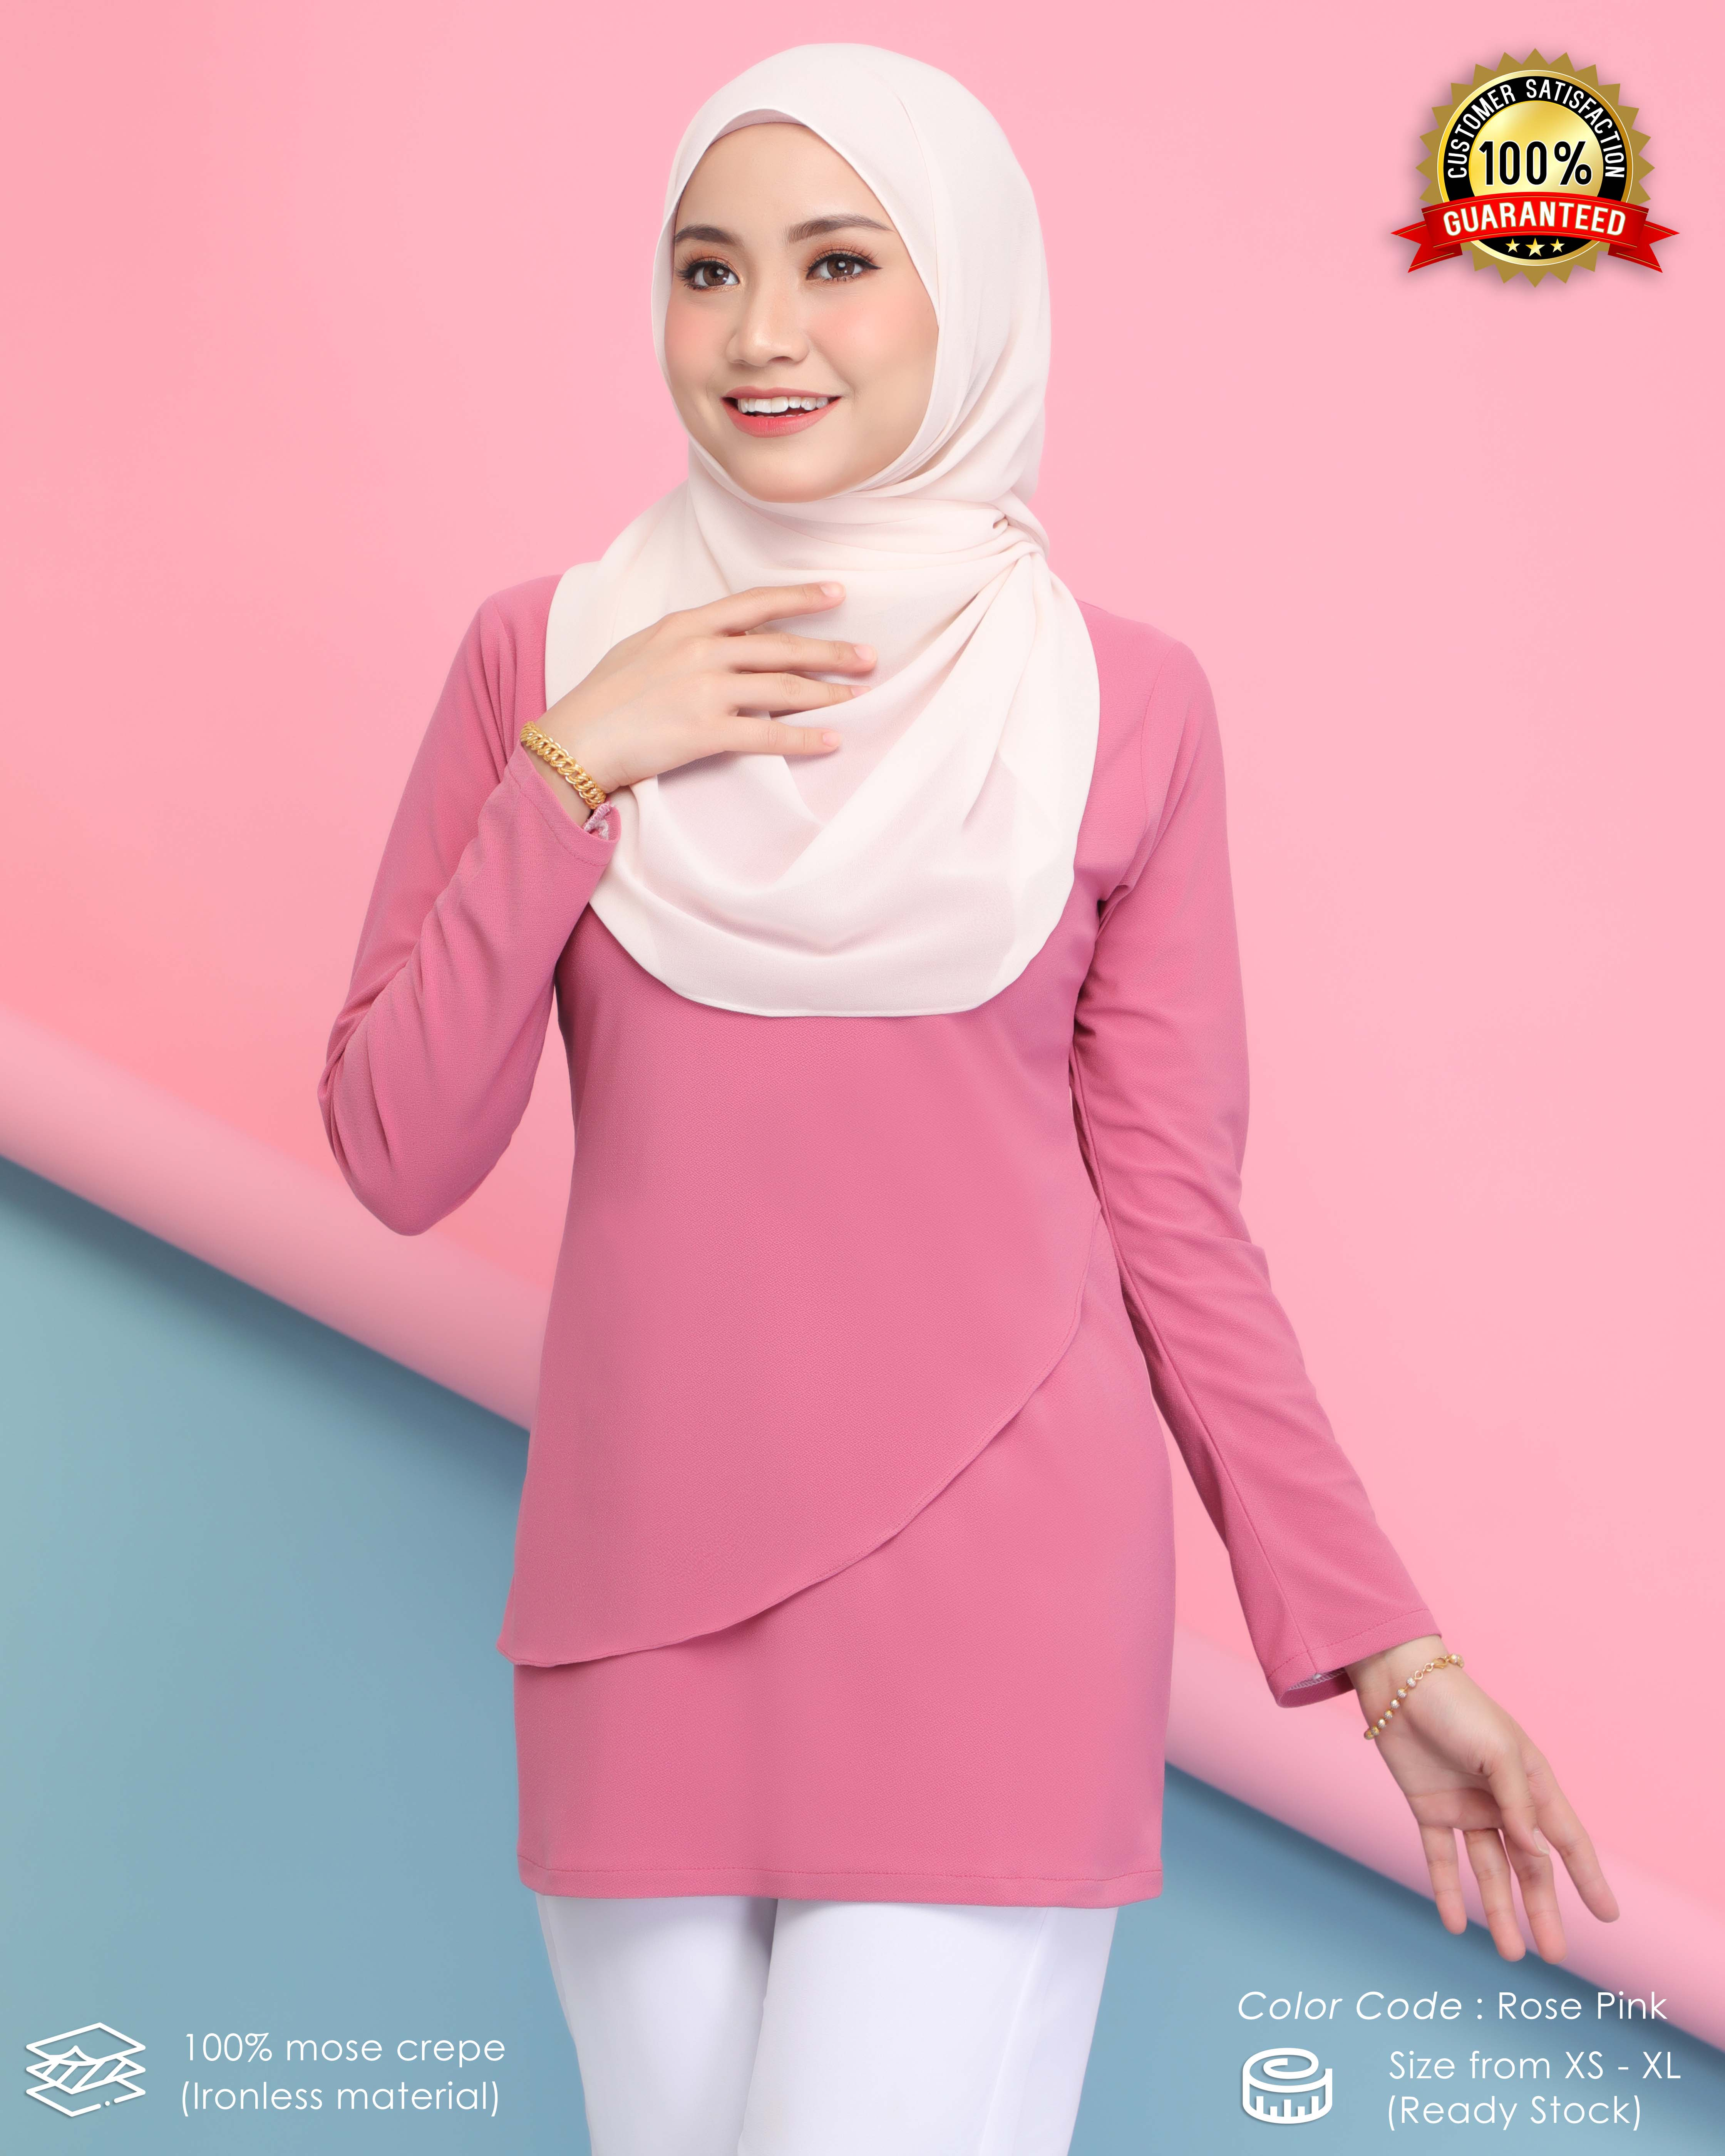 LILY - ROSE PINK